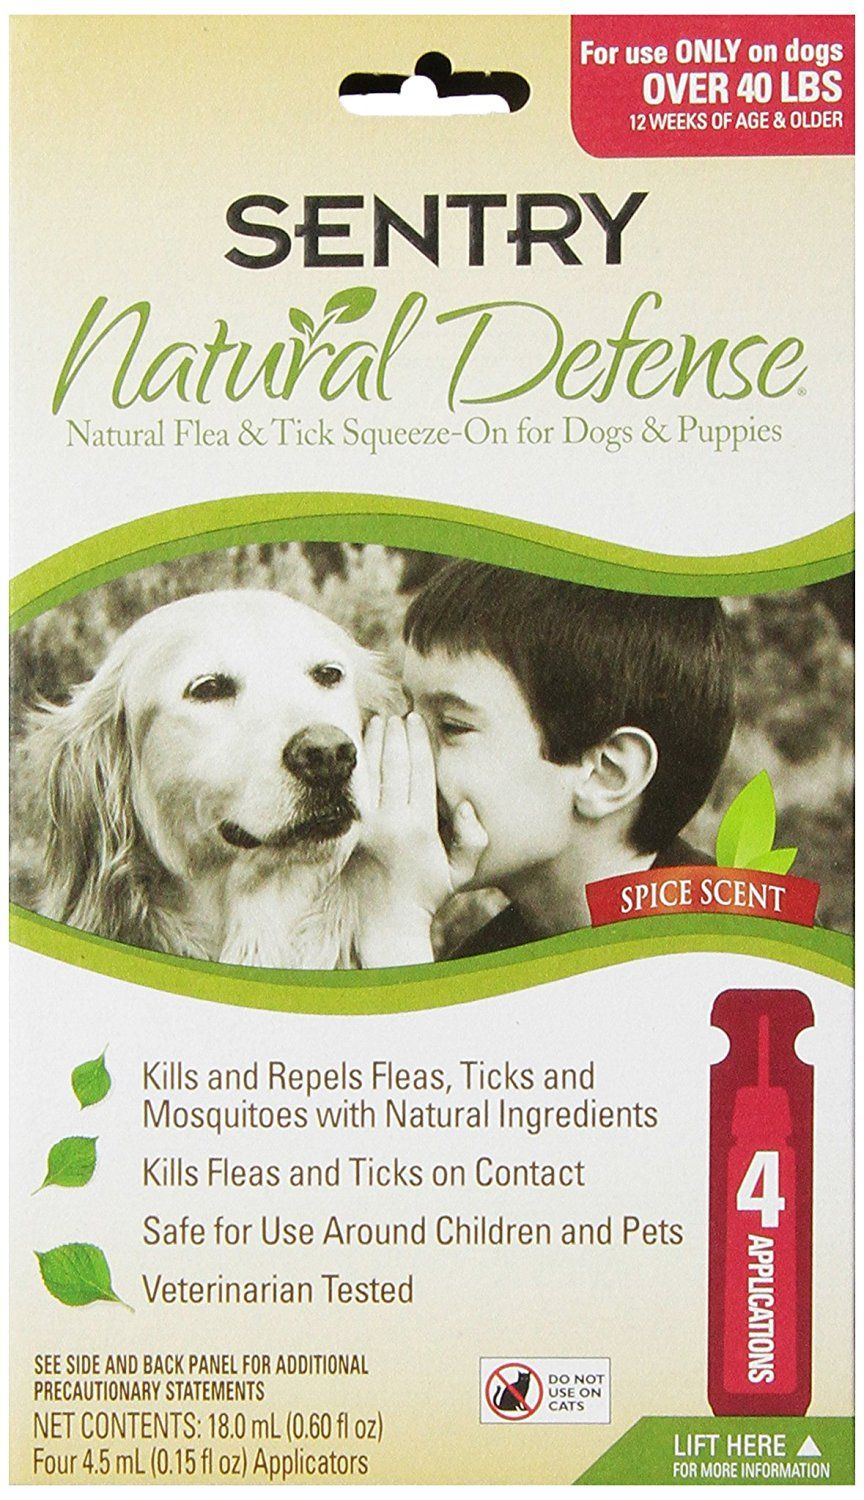 Sentry Natural Defense Flea and Tick SqueezeOn for Dogs